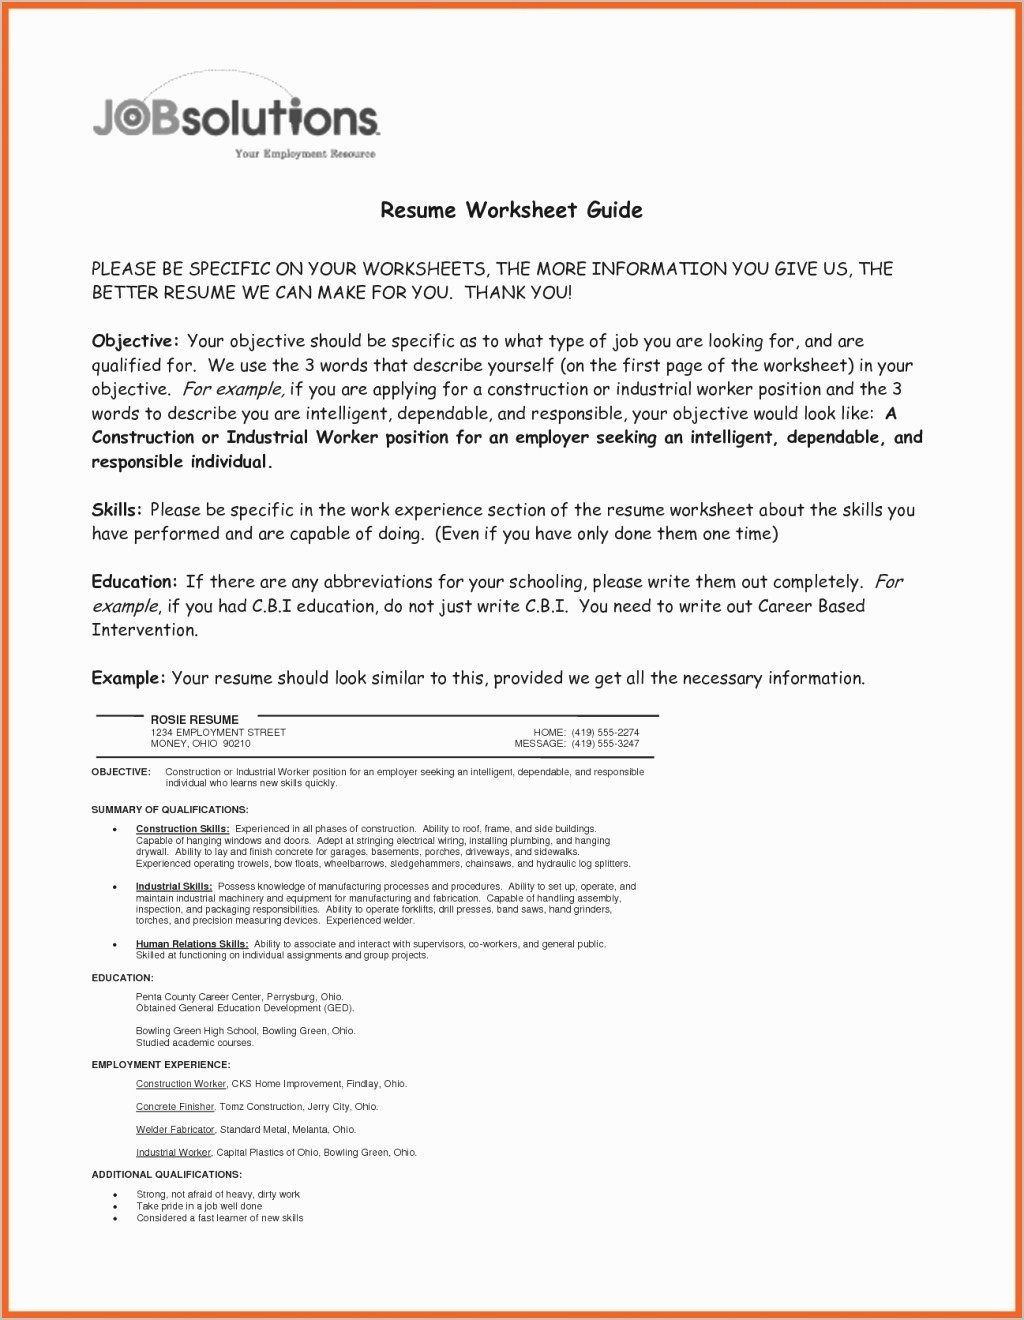 30 Welder Fabricator Resume Sample Job Resume Examples Acting